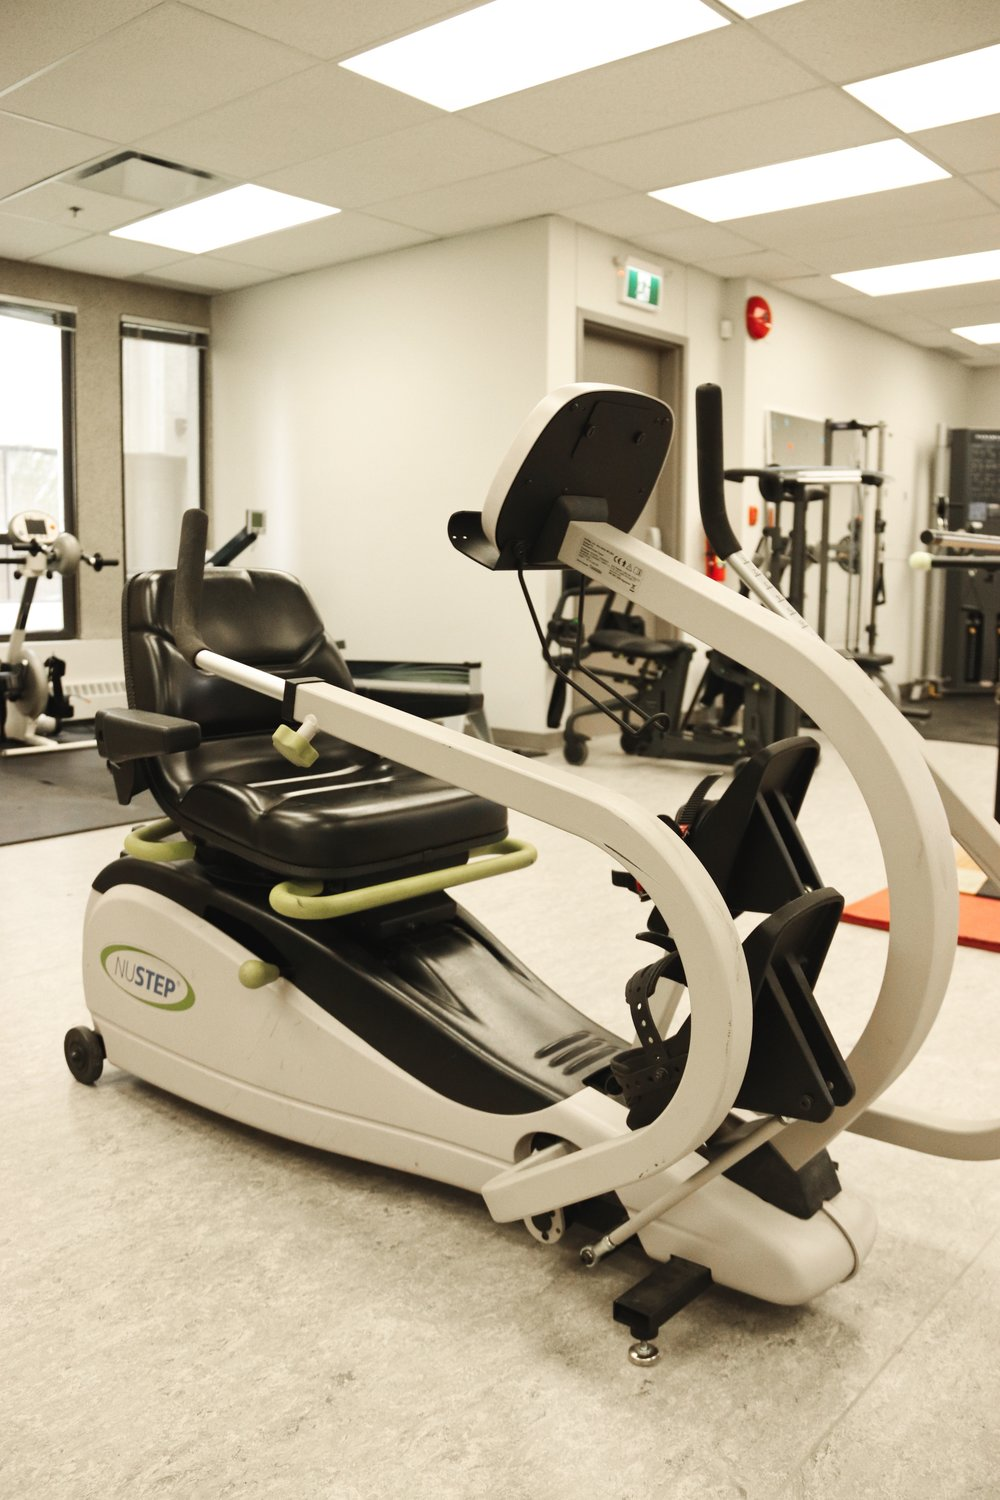 nustep - The NuStep provides a total-body cardio and strength workout, which supports healthy heart and brain function. Regular exercise on our cross trainer can also help build and retain muscle mass while increasing flexibility and range of motion.